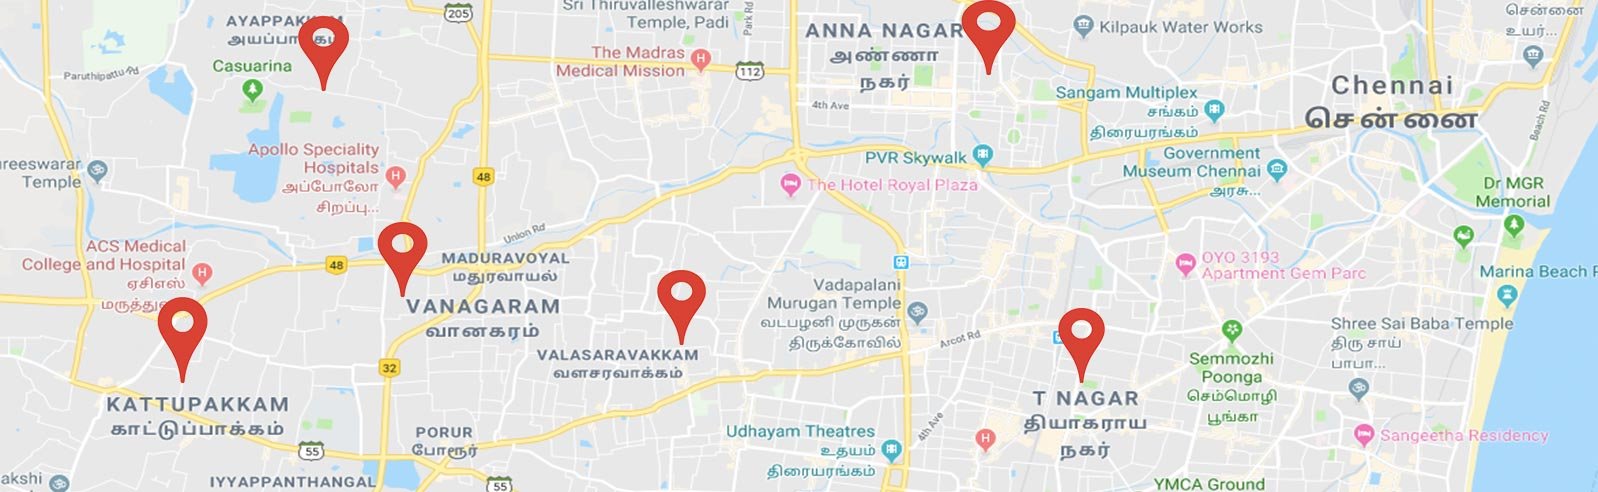 affordable escorts services location map